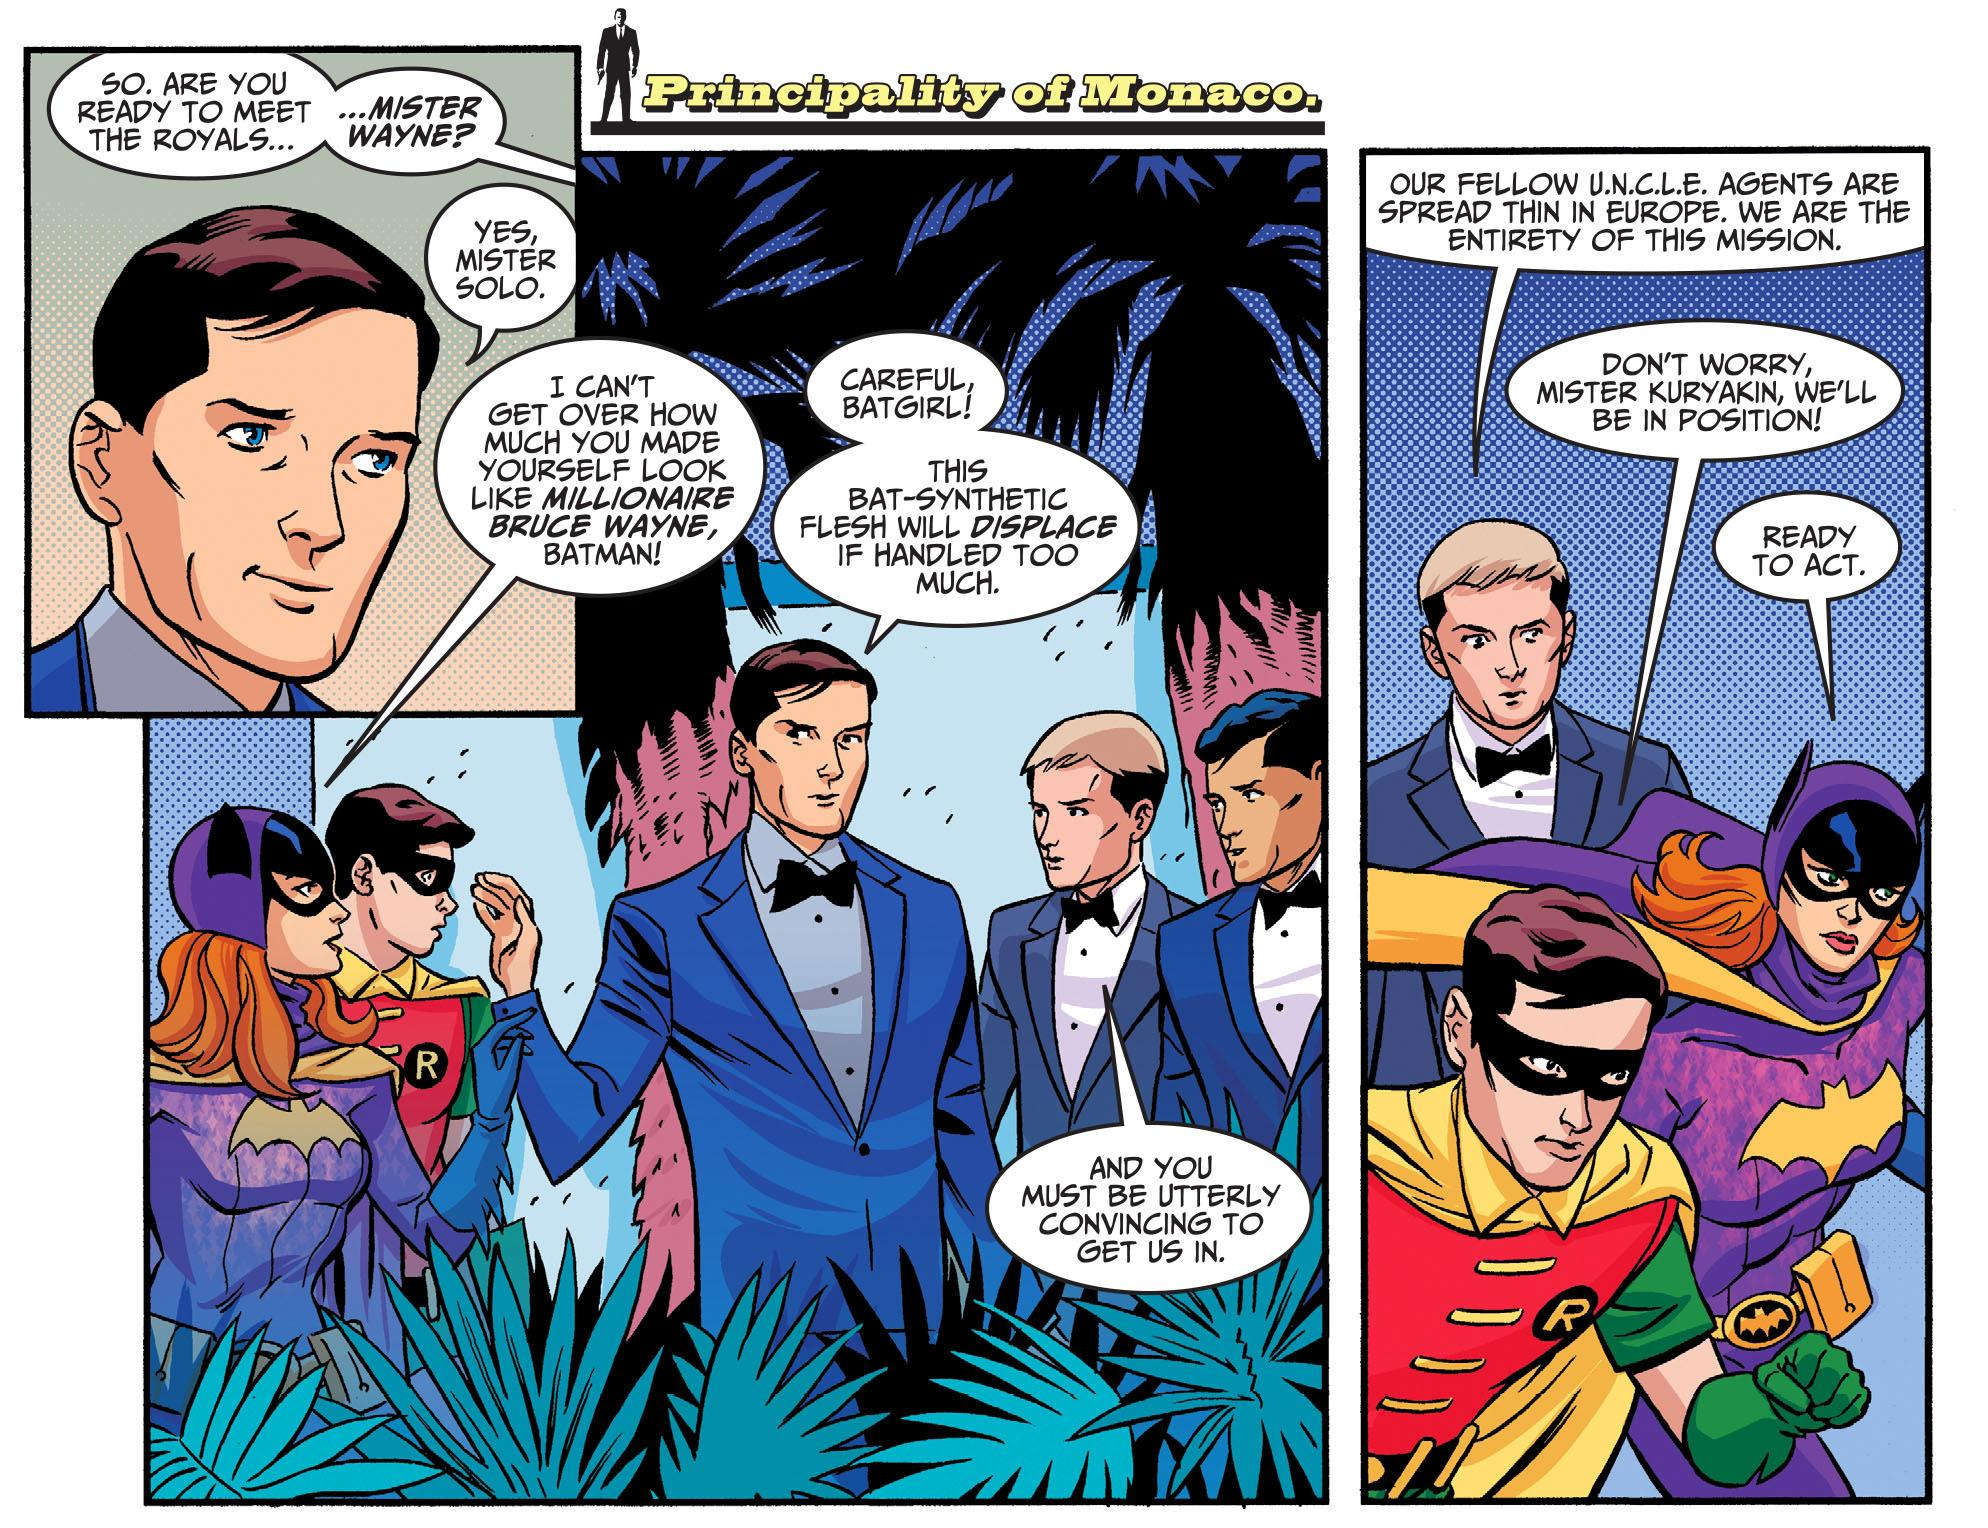 Batman '66 Meets the Man From U.N.C.L.E review